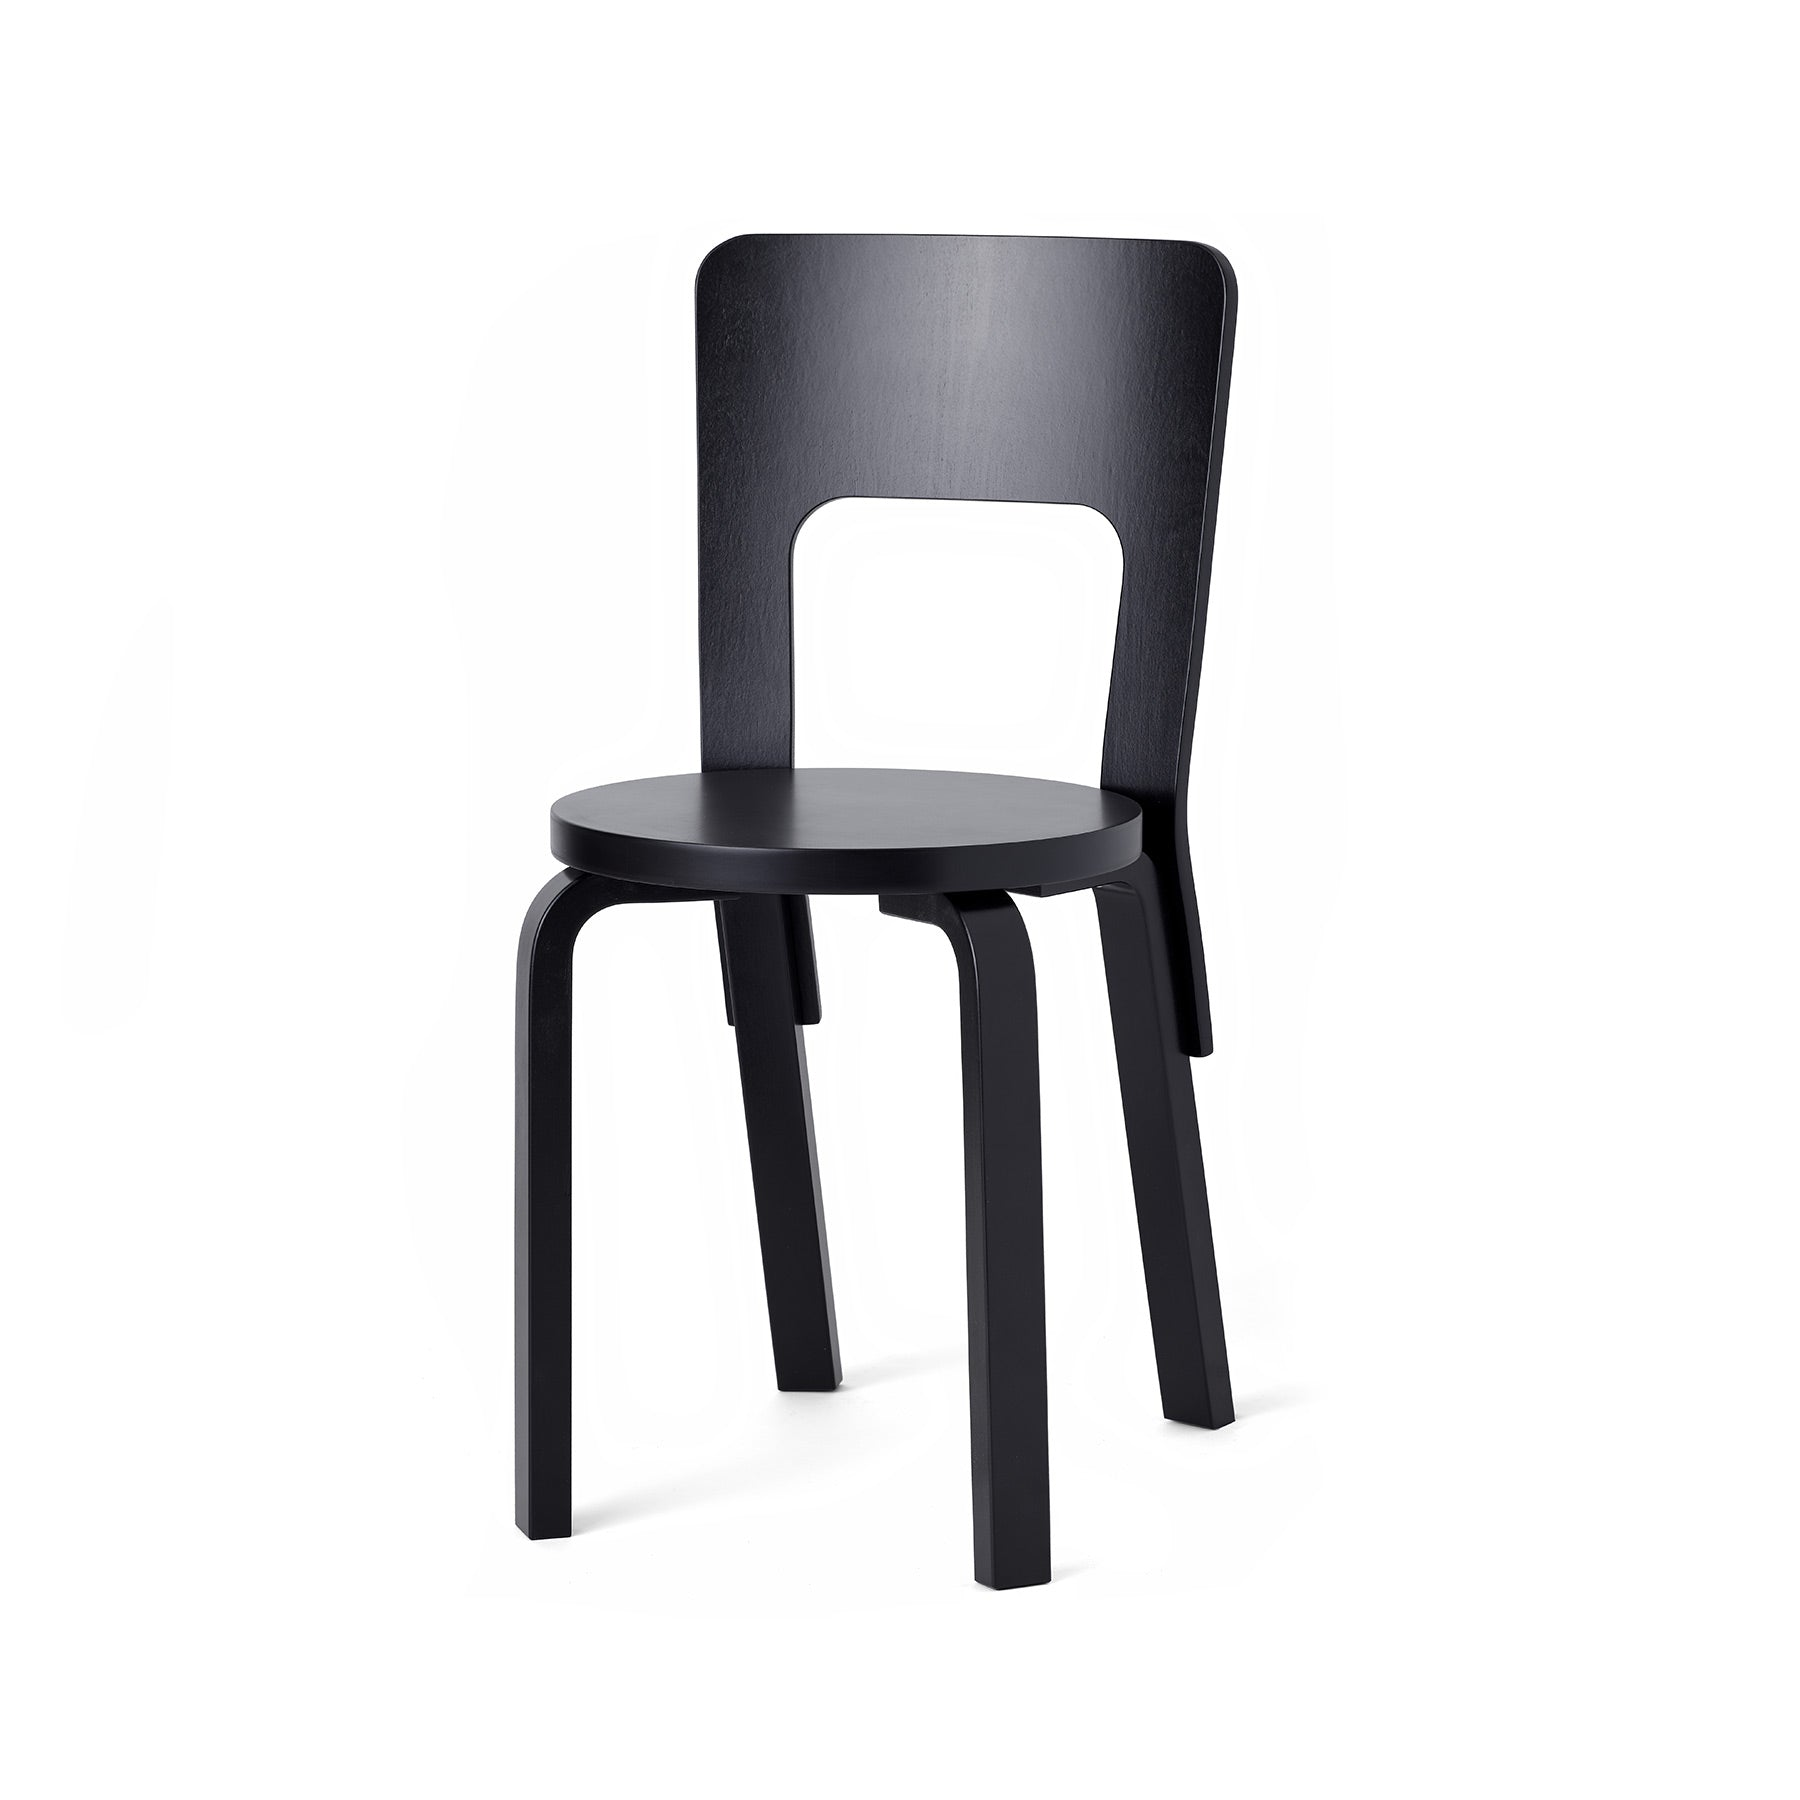 Chair 66 in Black Zoom Image 1